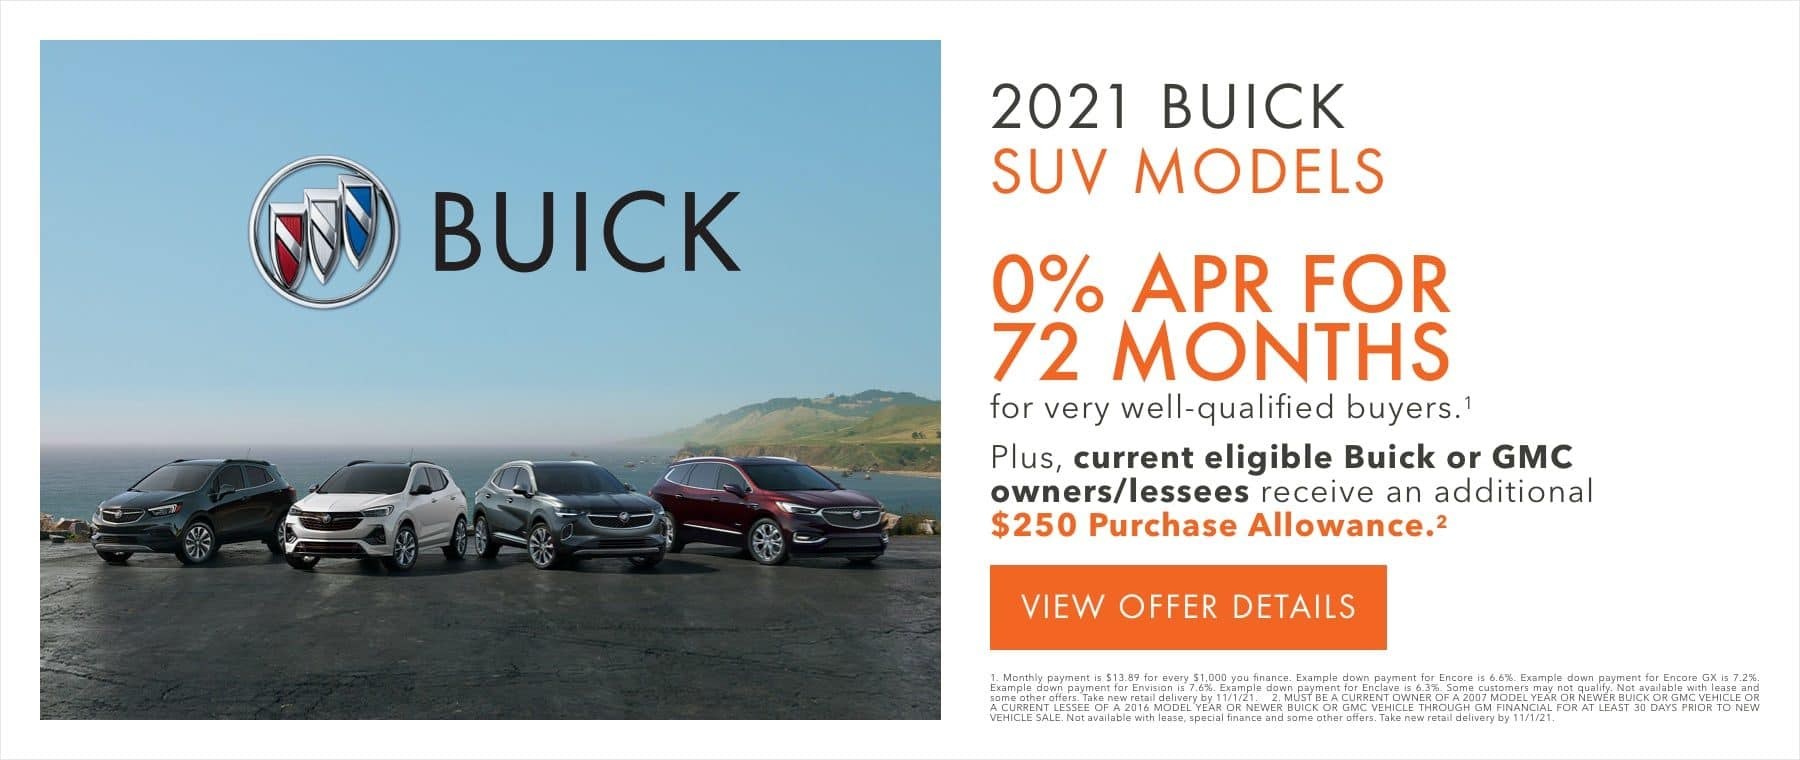 0% APR for 72 months for very well-qualified buyers.1 Plus, current eligible Buick or GMC owners/lessees receive an additional $250 Purchase Allowance.2